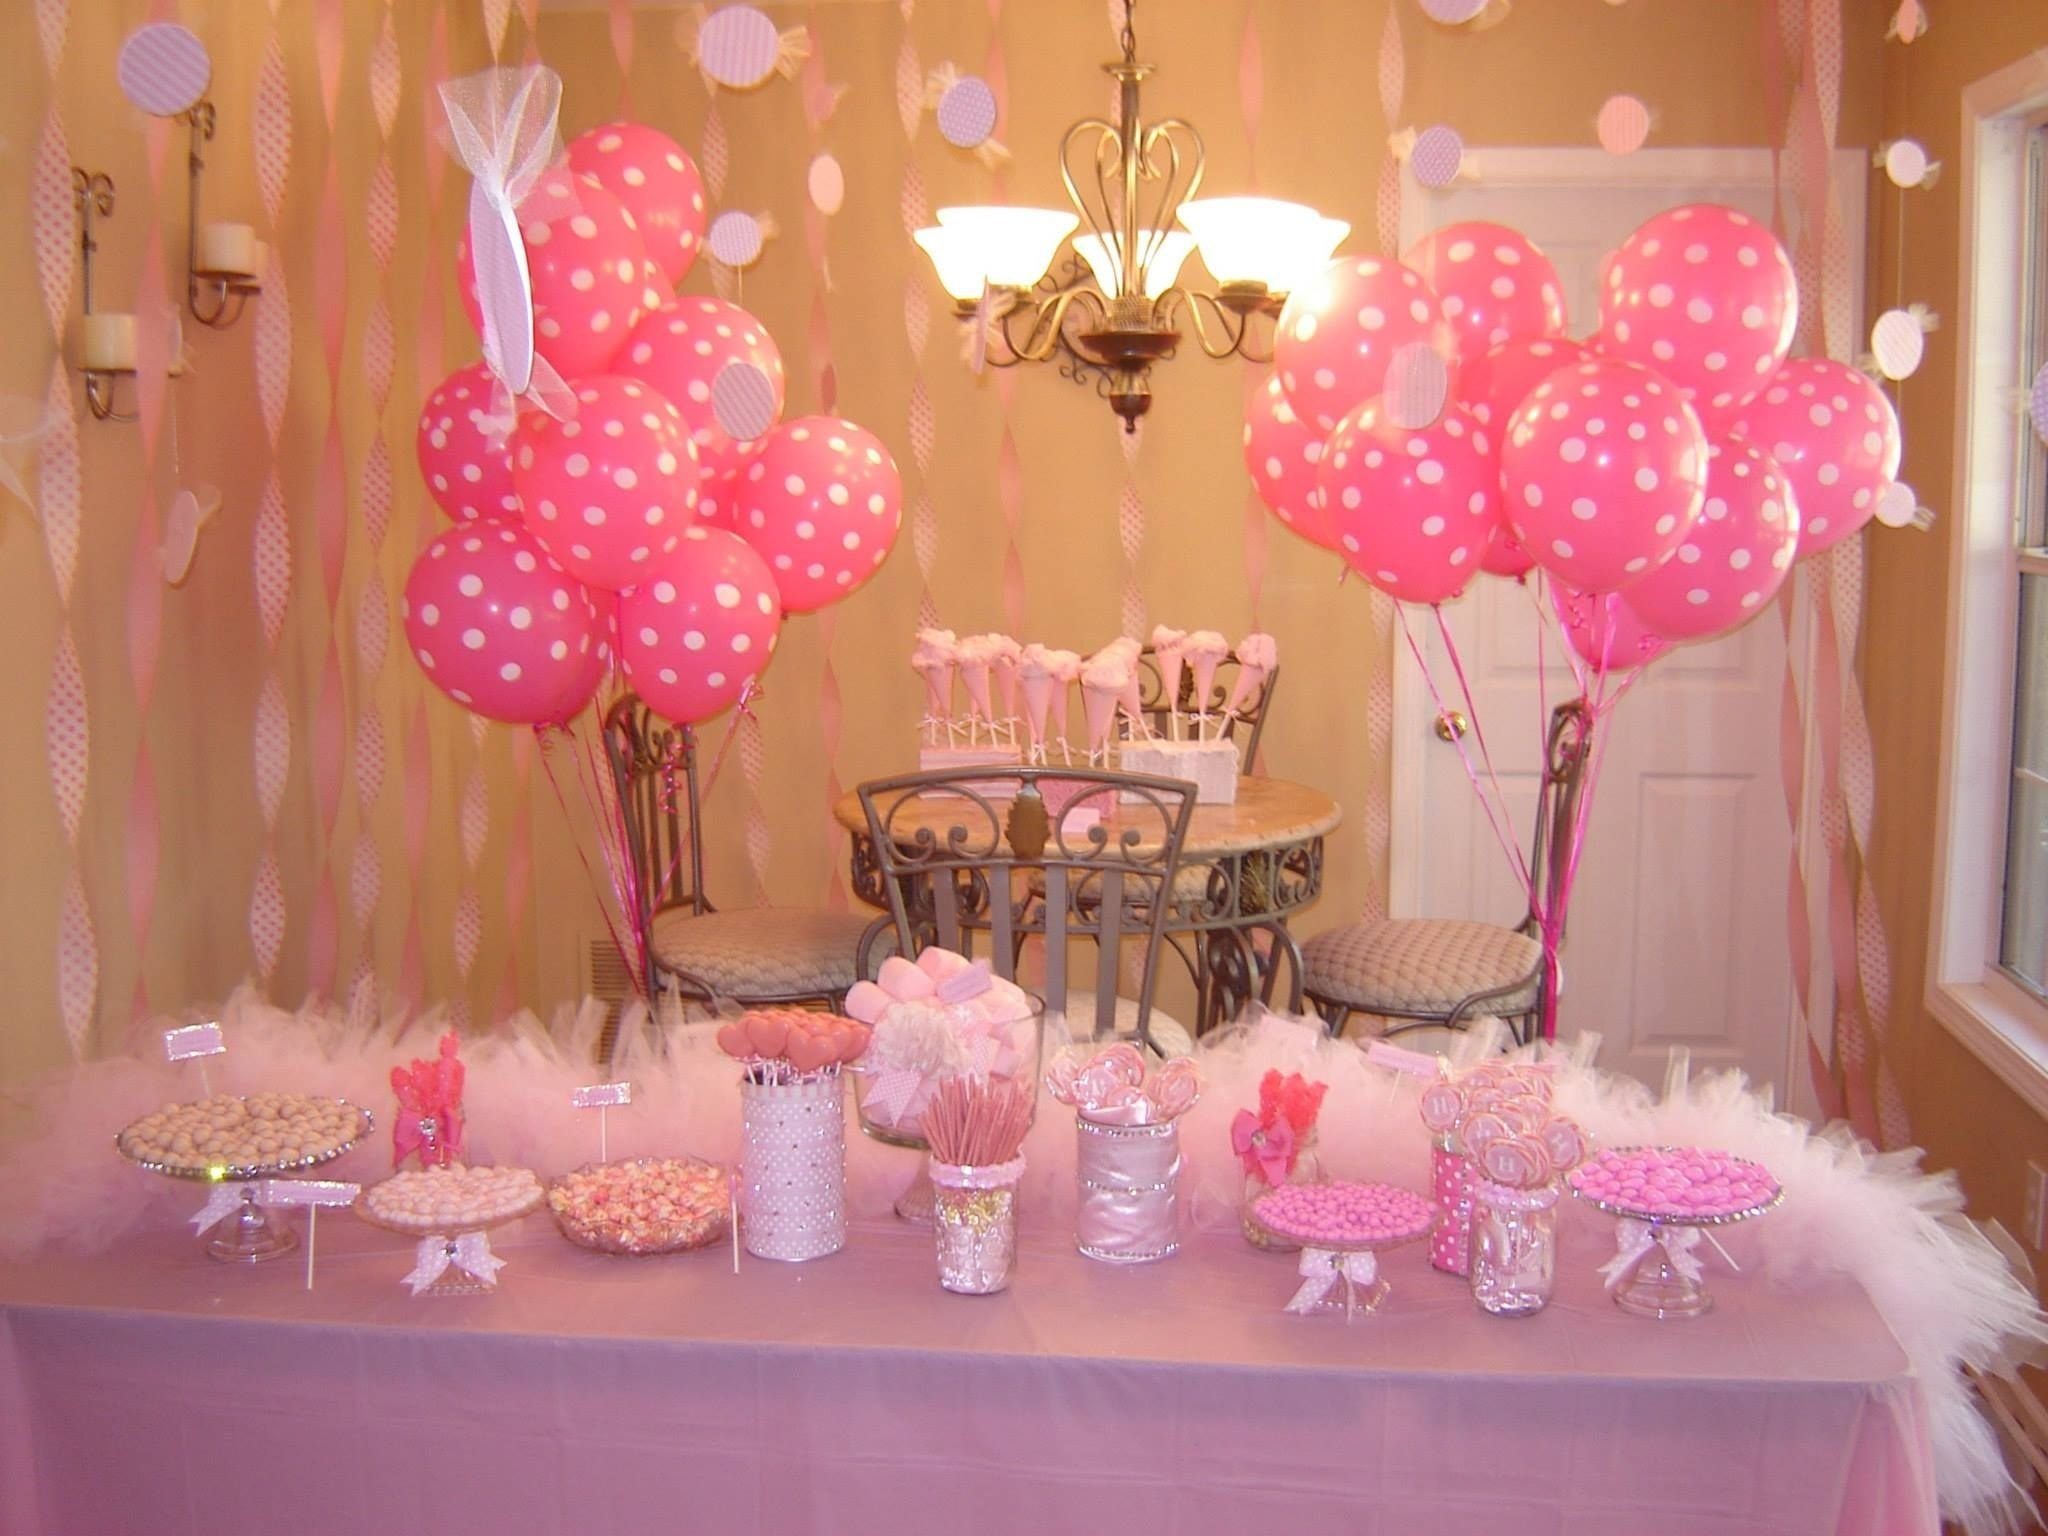 10 Fabulous Pink Party Ideas For Adults 16 creative ideas for hosting party in small spaces birthdays 2 2021